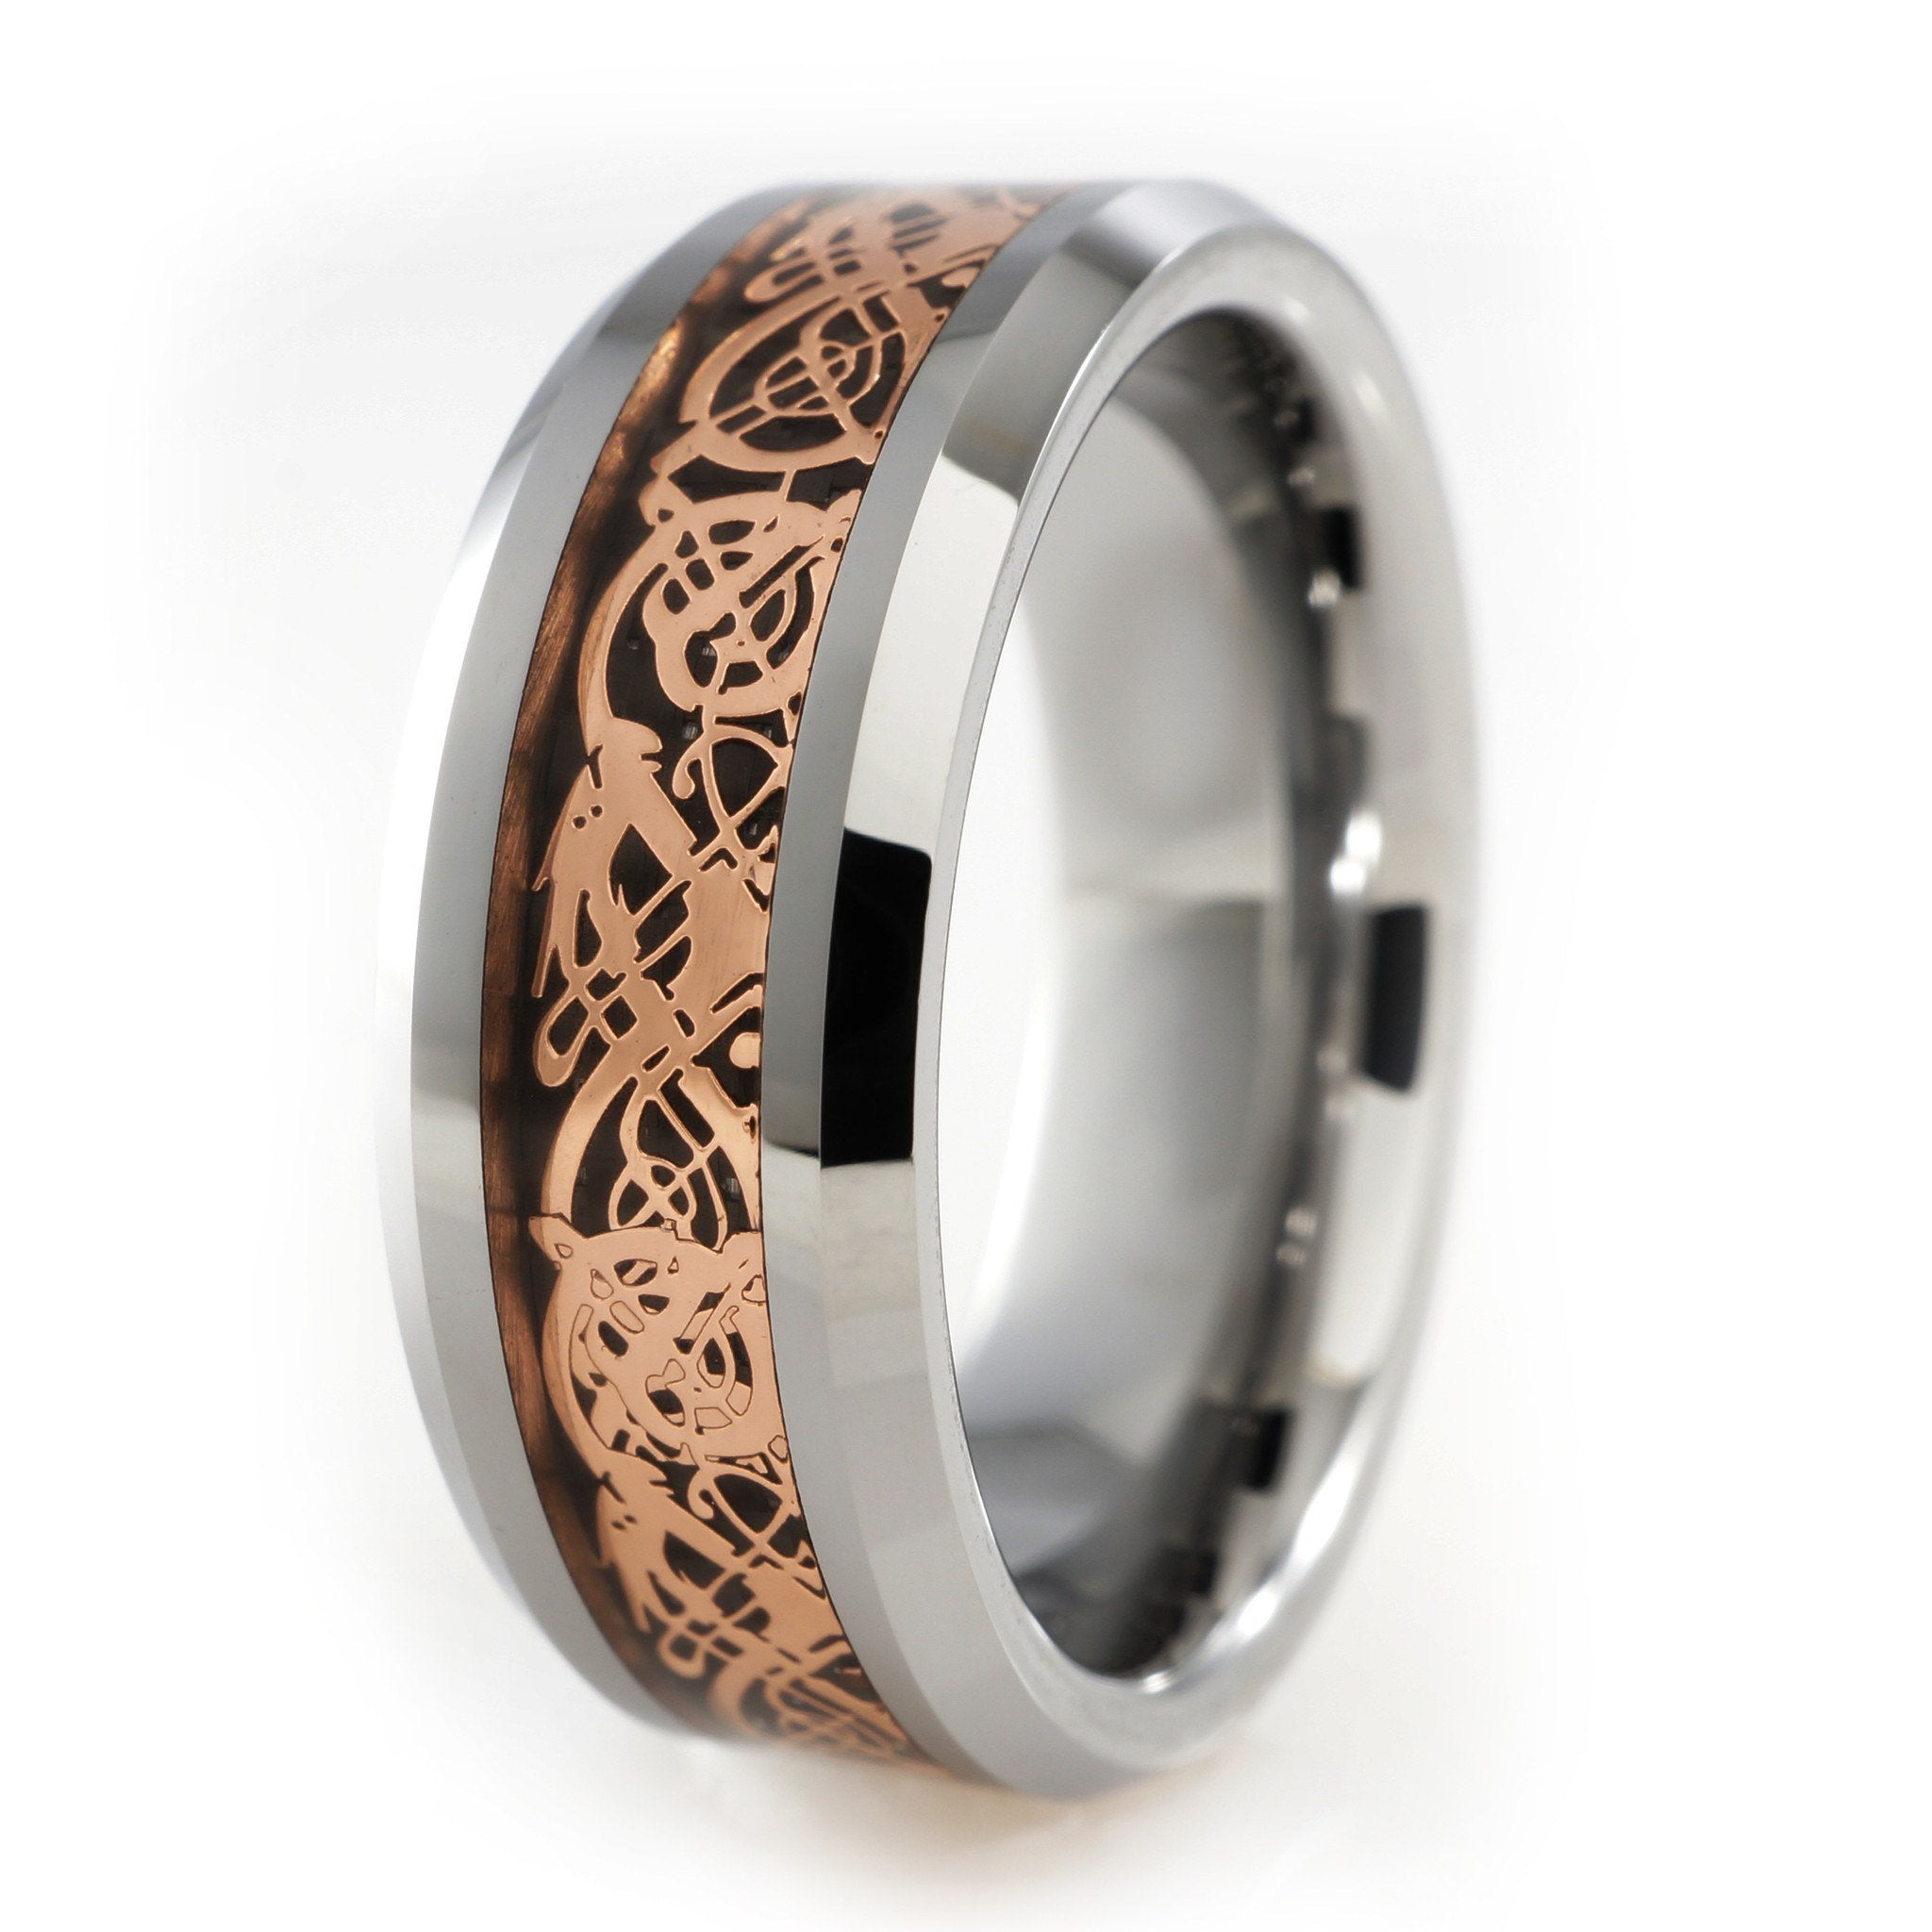 kona kowi inlaid hanebrink tungsten carbide jewelers koa product rings ring wood